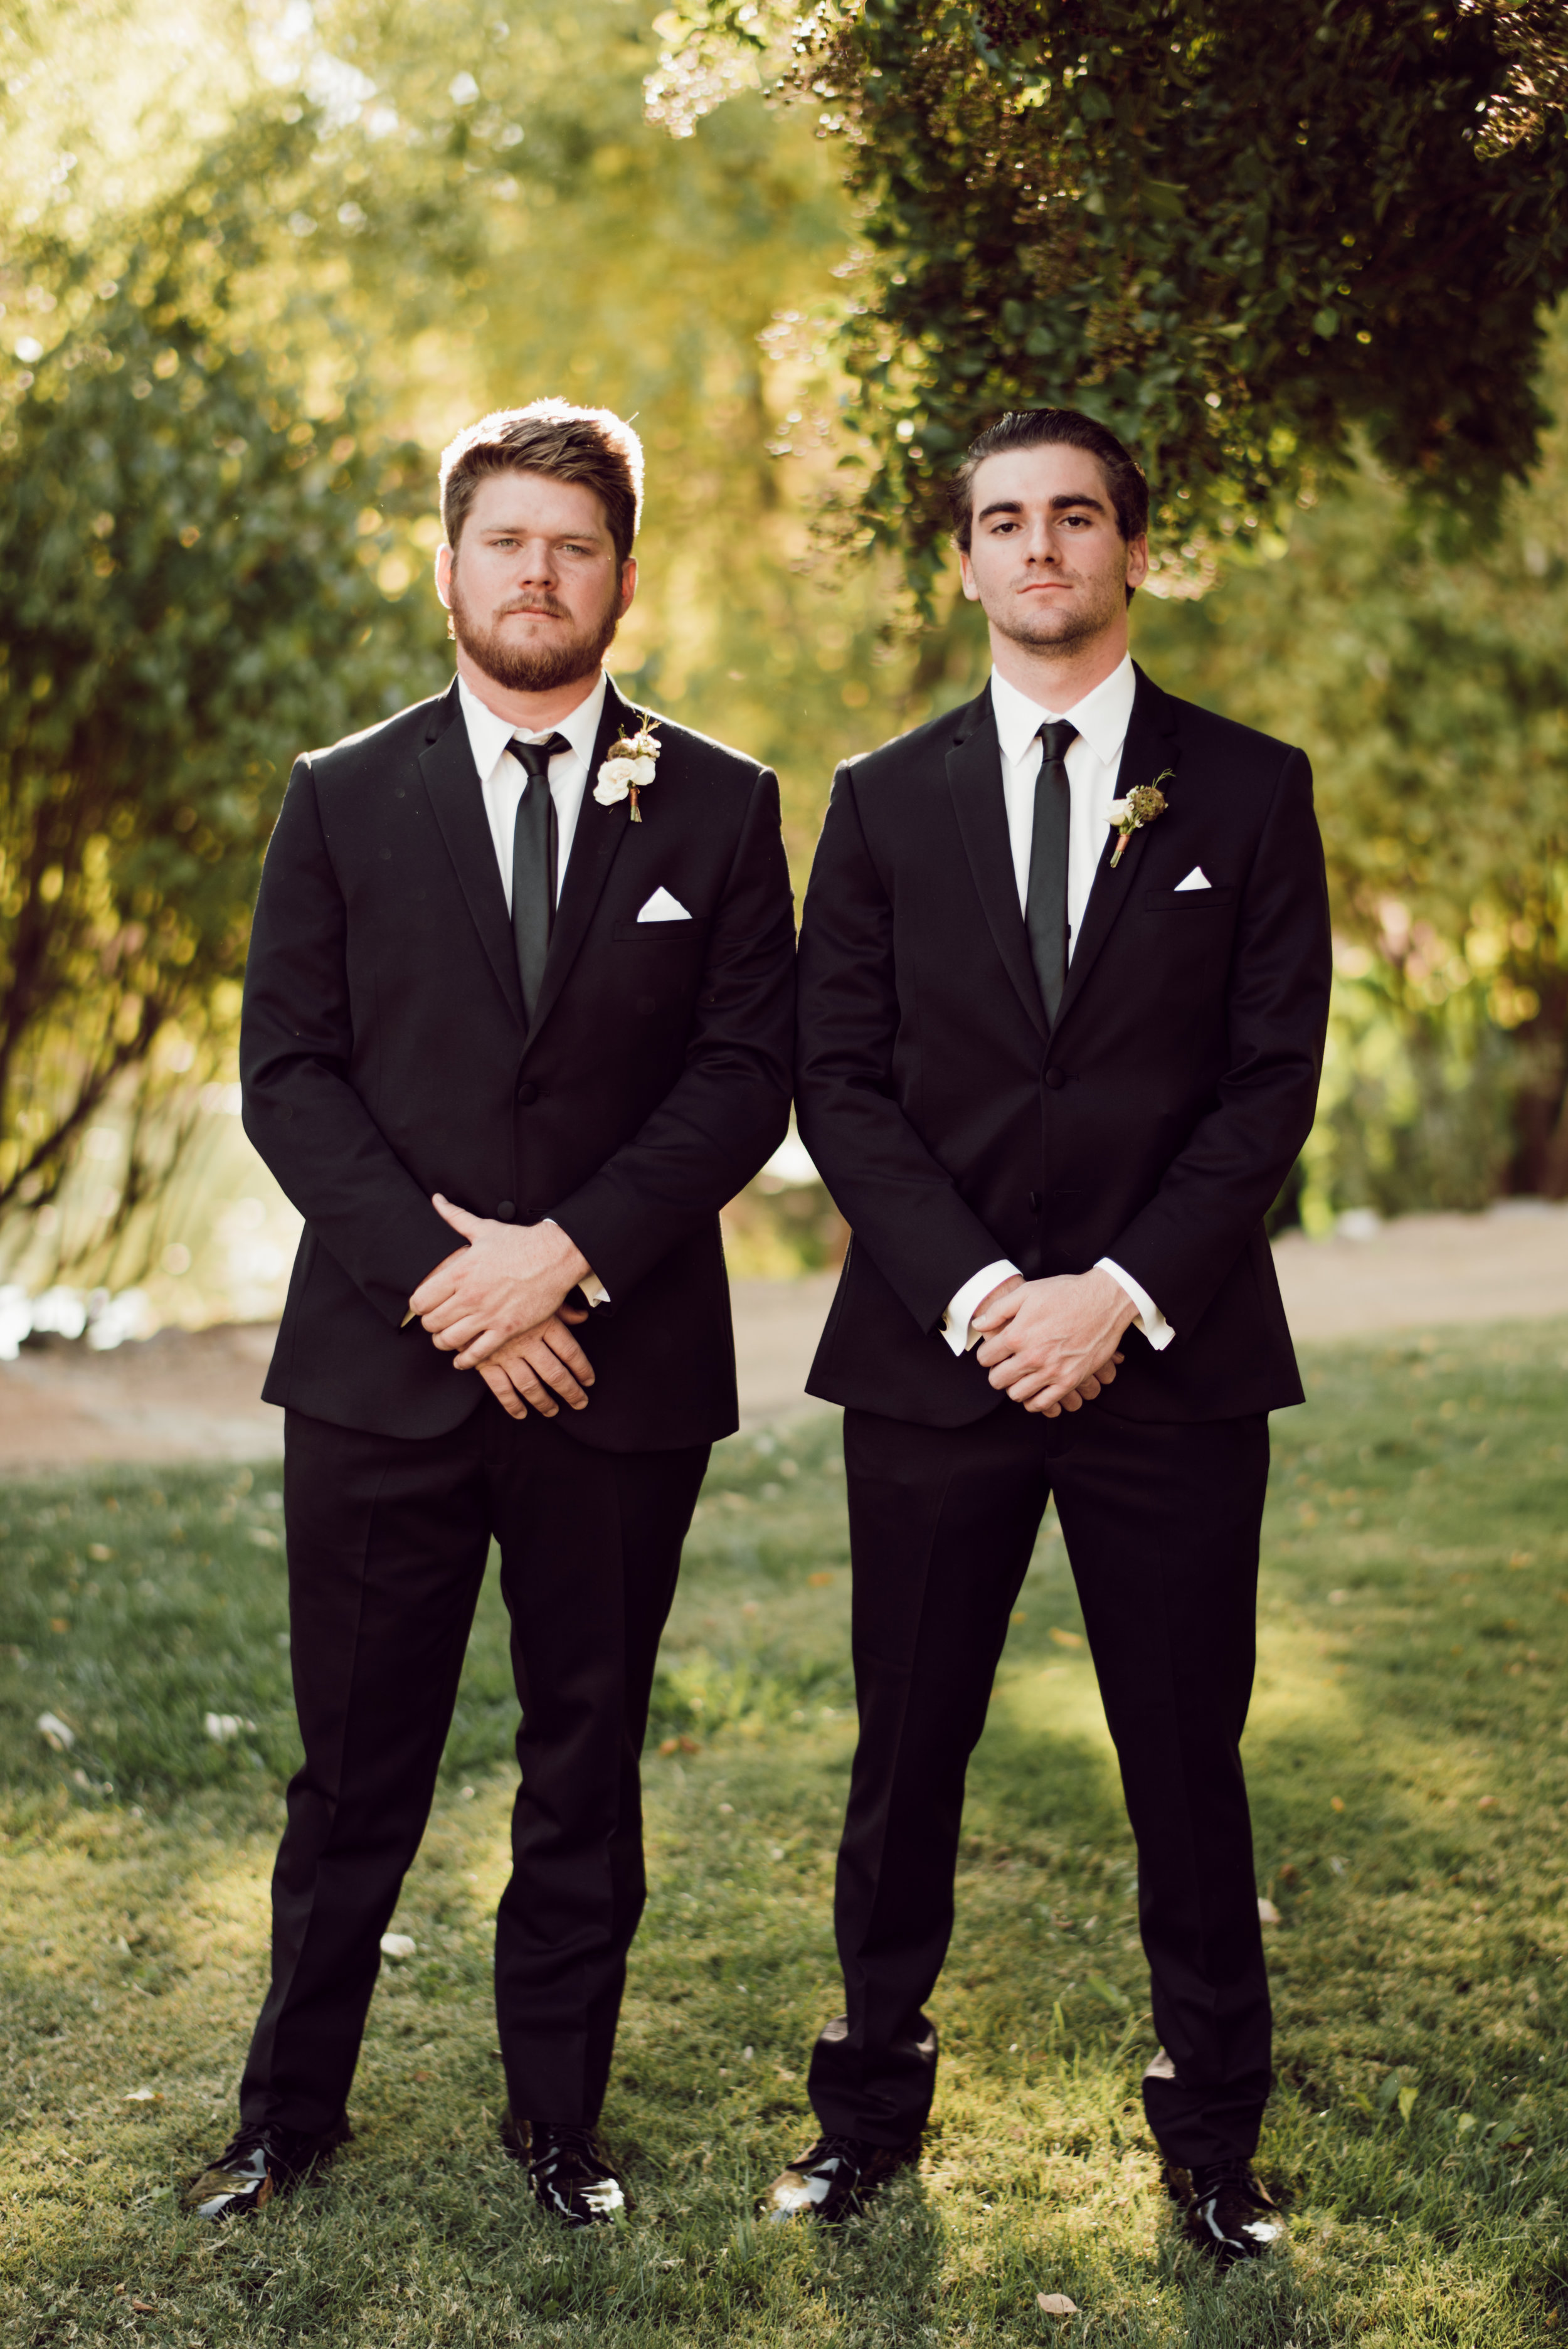 DA Ranch Fall Wedding - Groomsmen